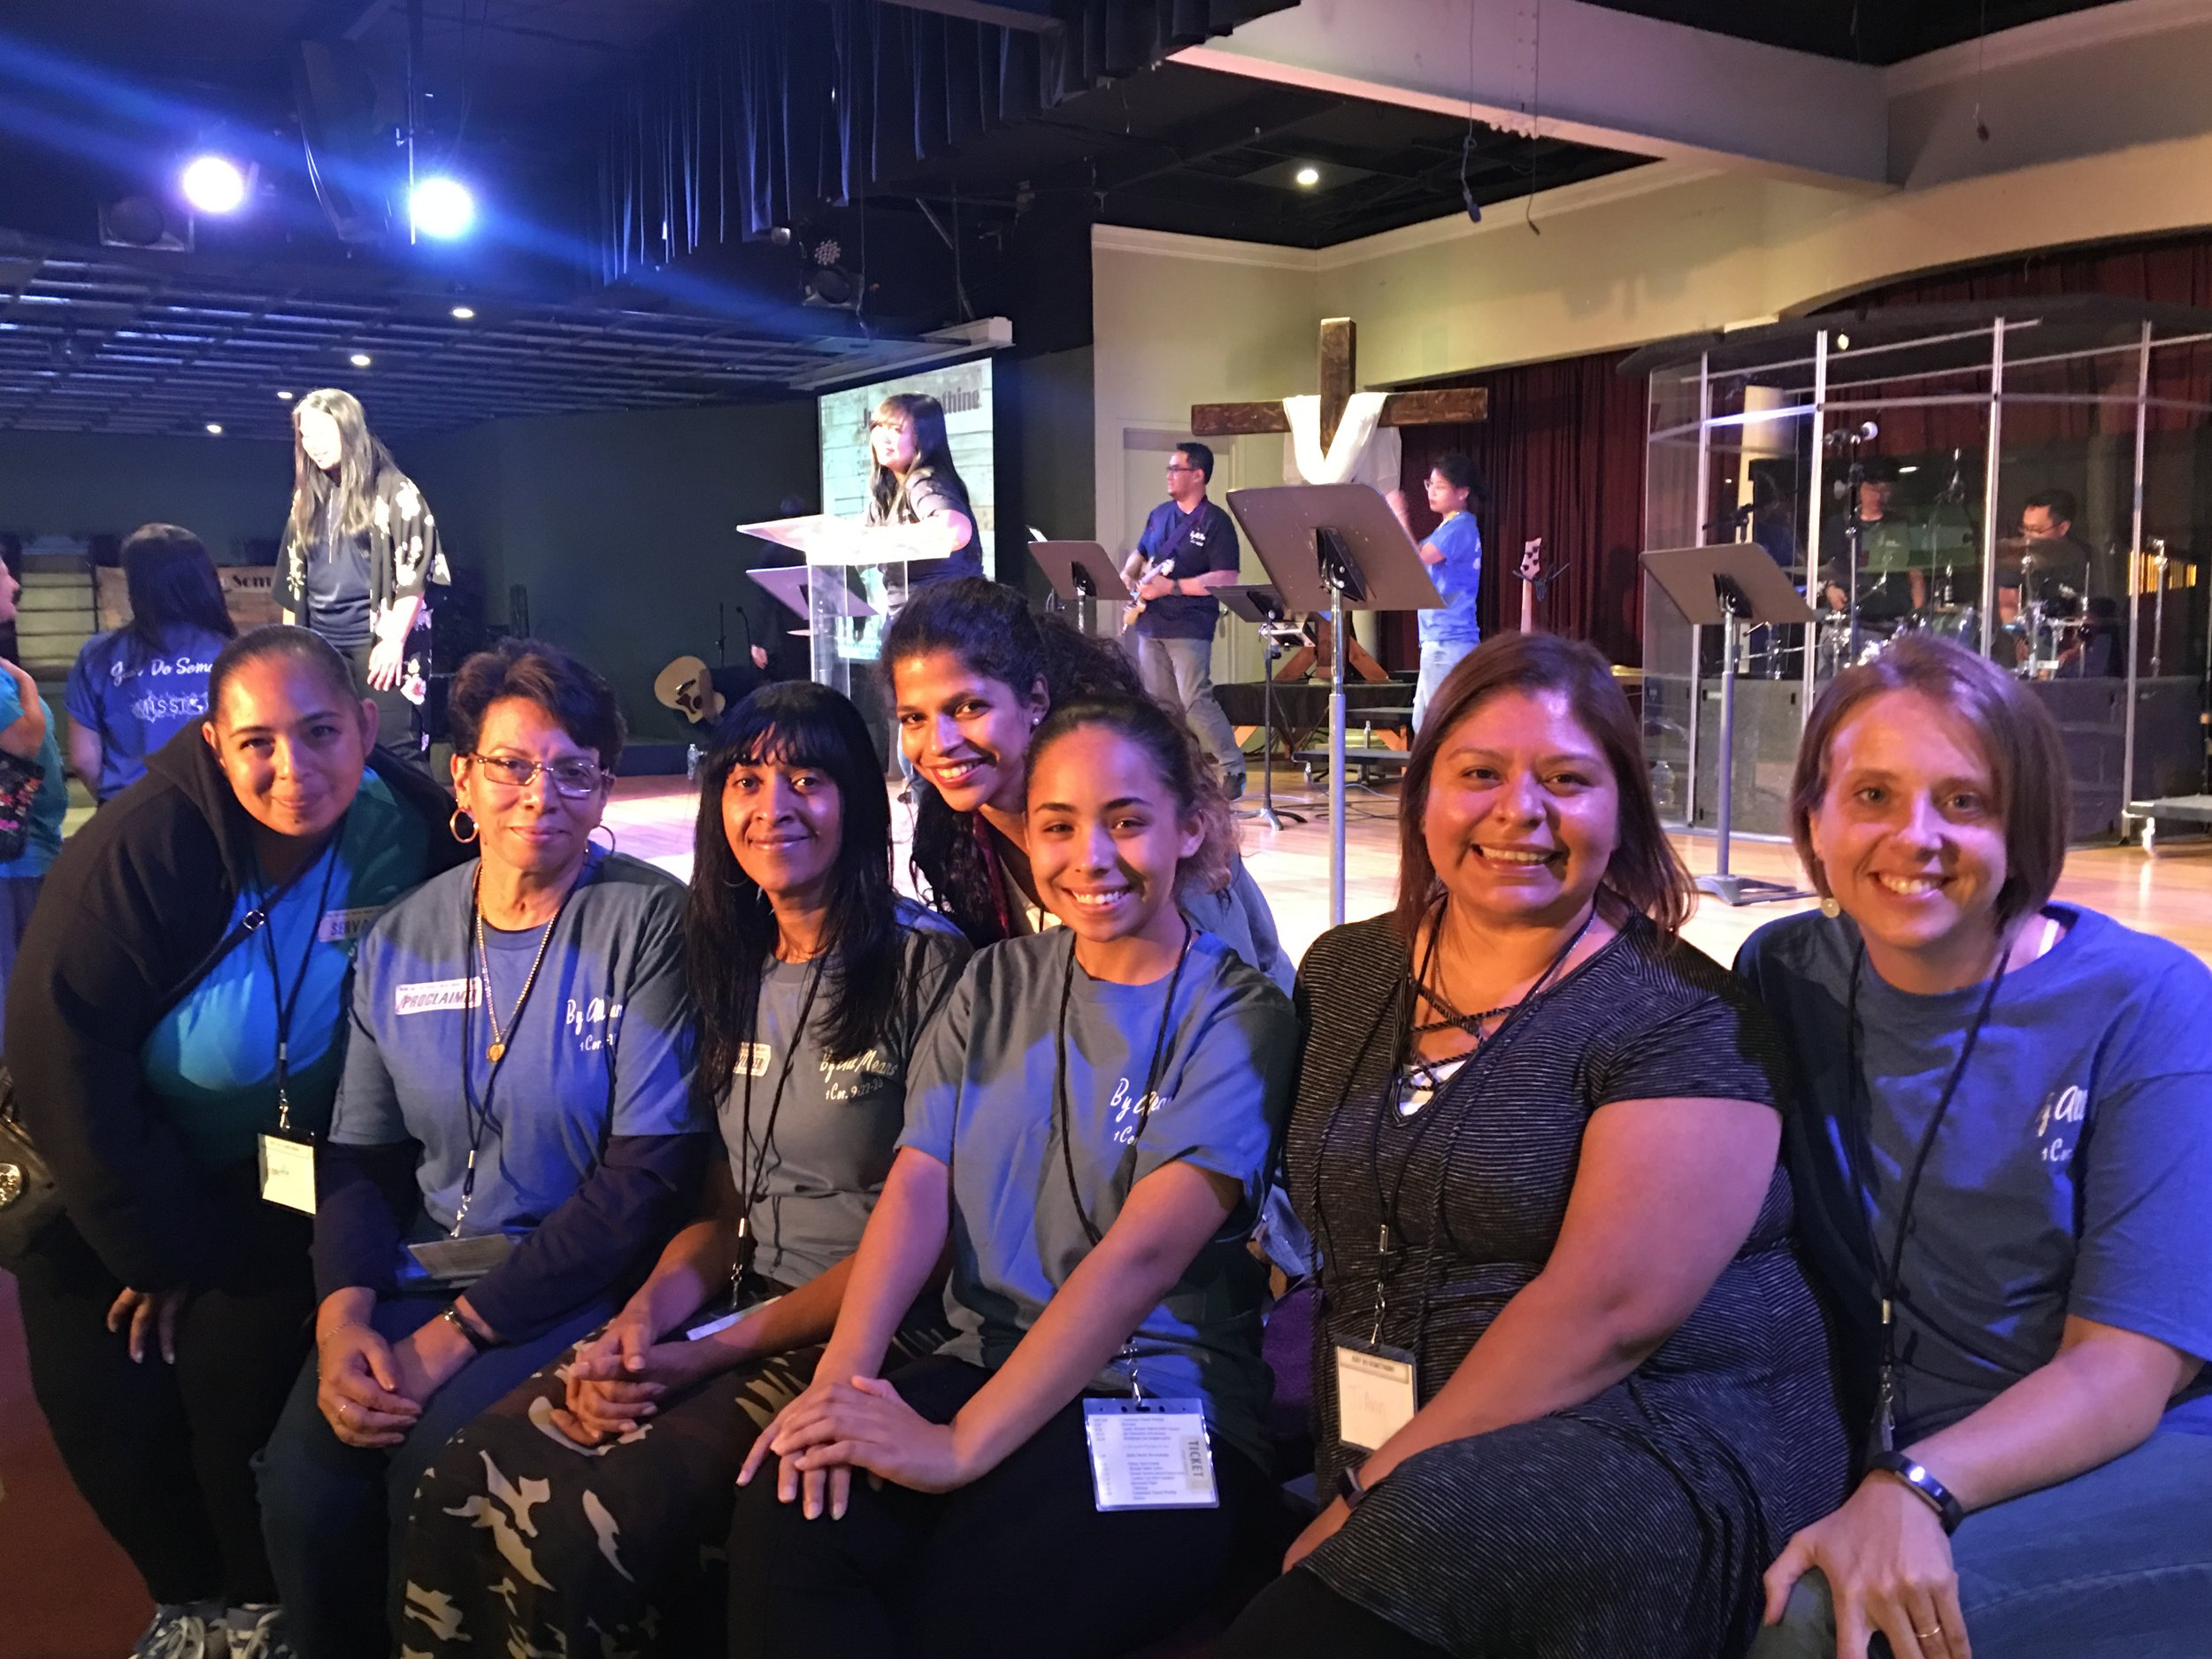 (from right) Kerri Johnson and JoAnn Lira (staff from Graffiti 2) along with Graffiti 2 Works artisans at the Just Do Something Event hosted by WMU of New York.